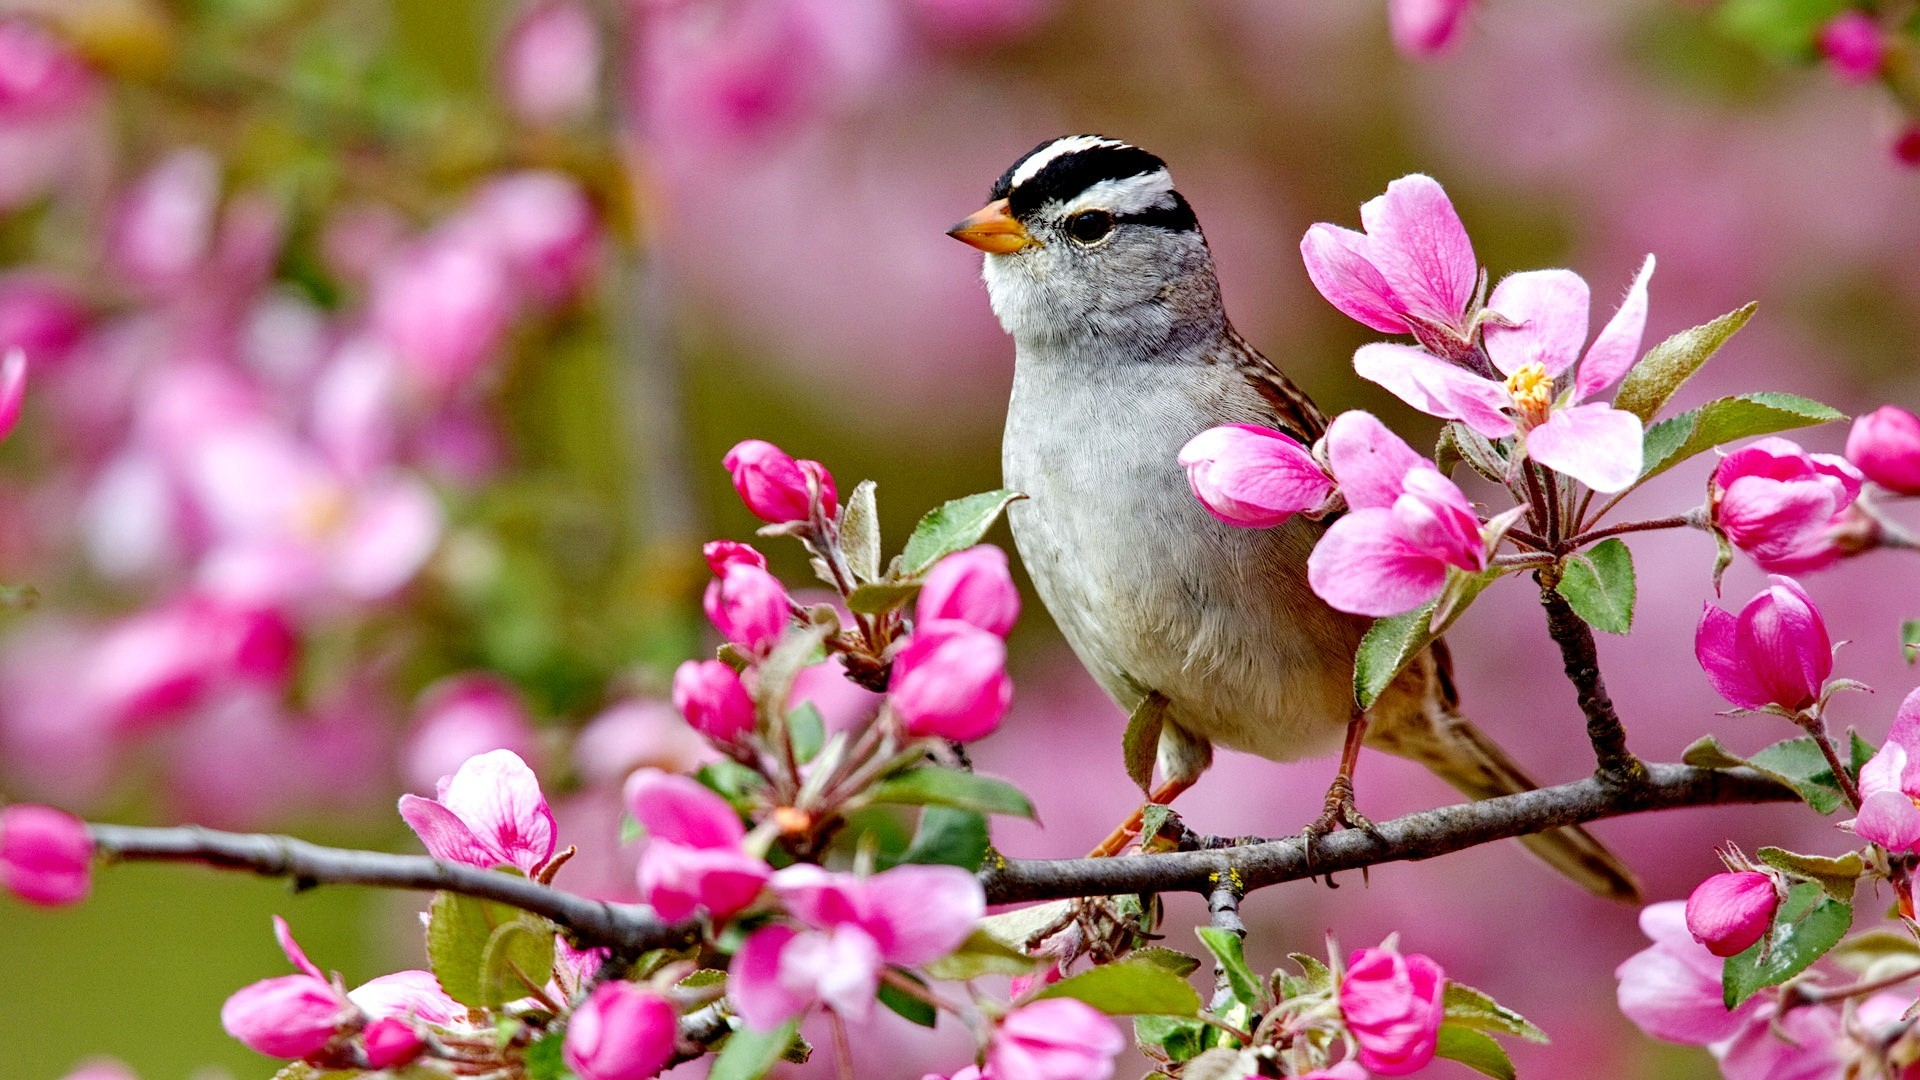 early spring hd wallpaper 50 images